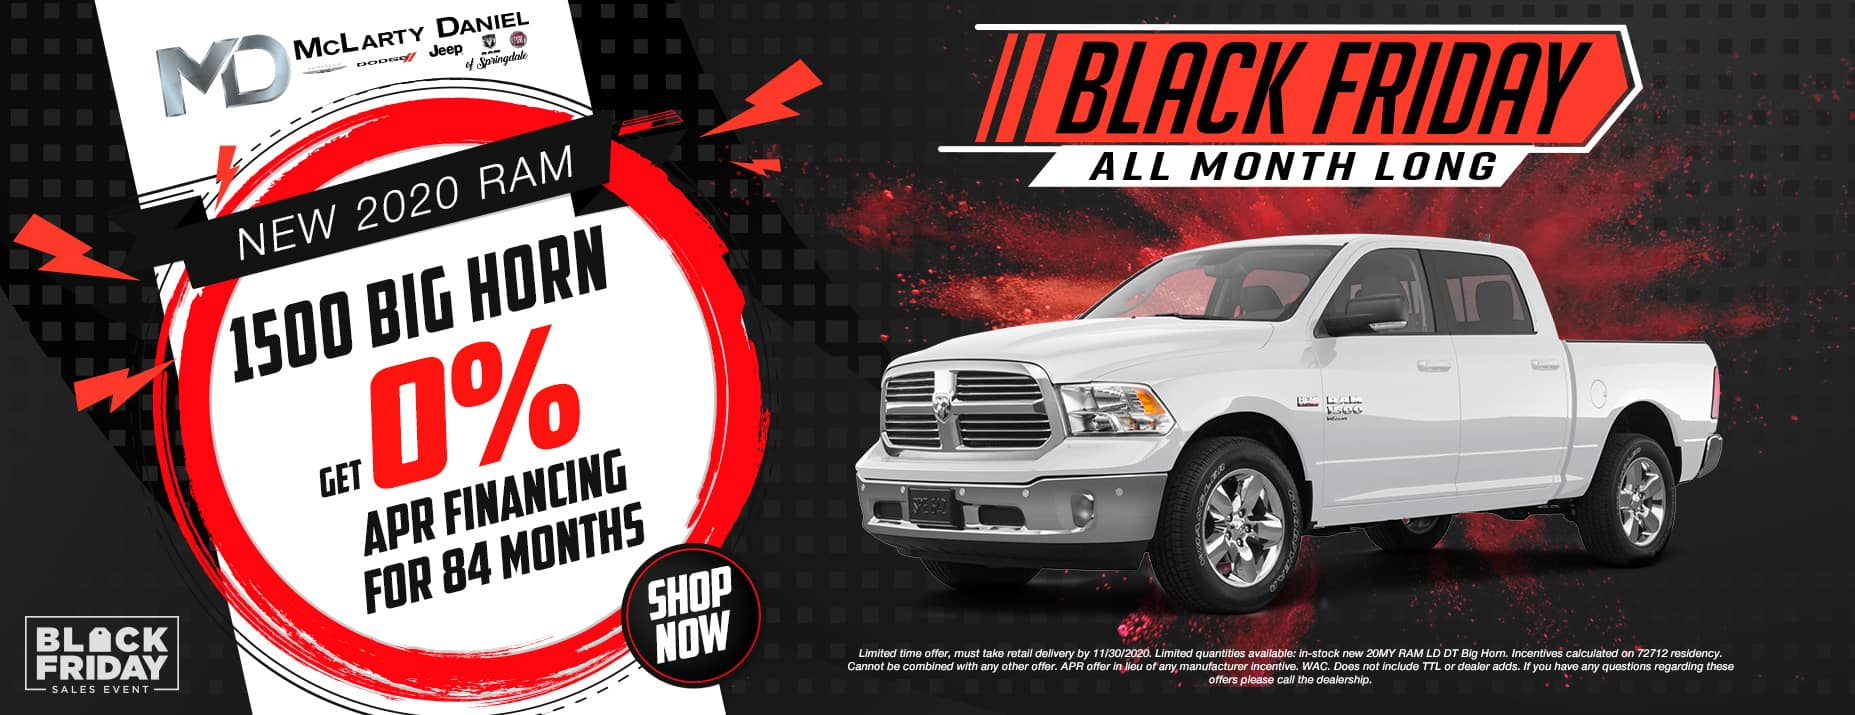 GET 0% FOR 84 MONTHS ON NEW RAM BIG HORN!